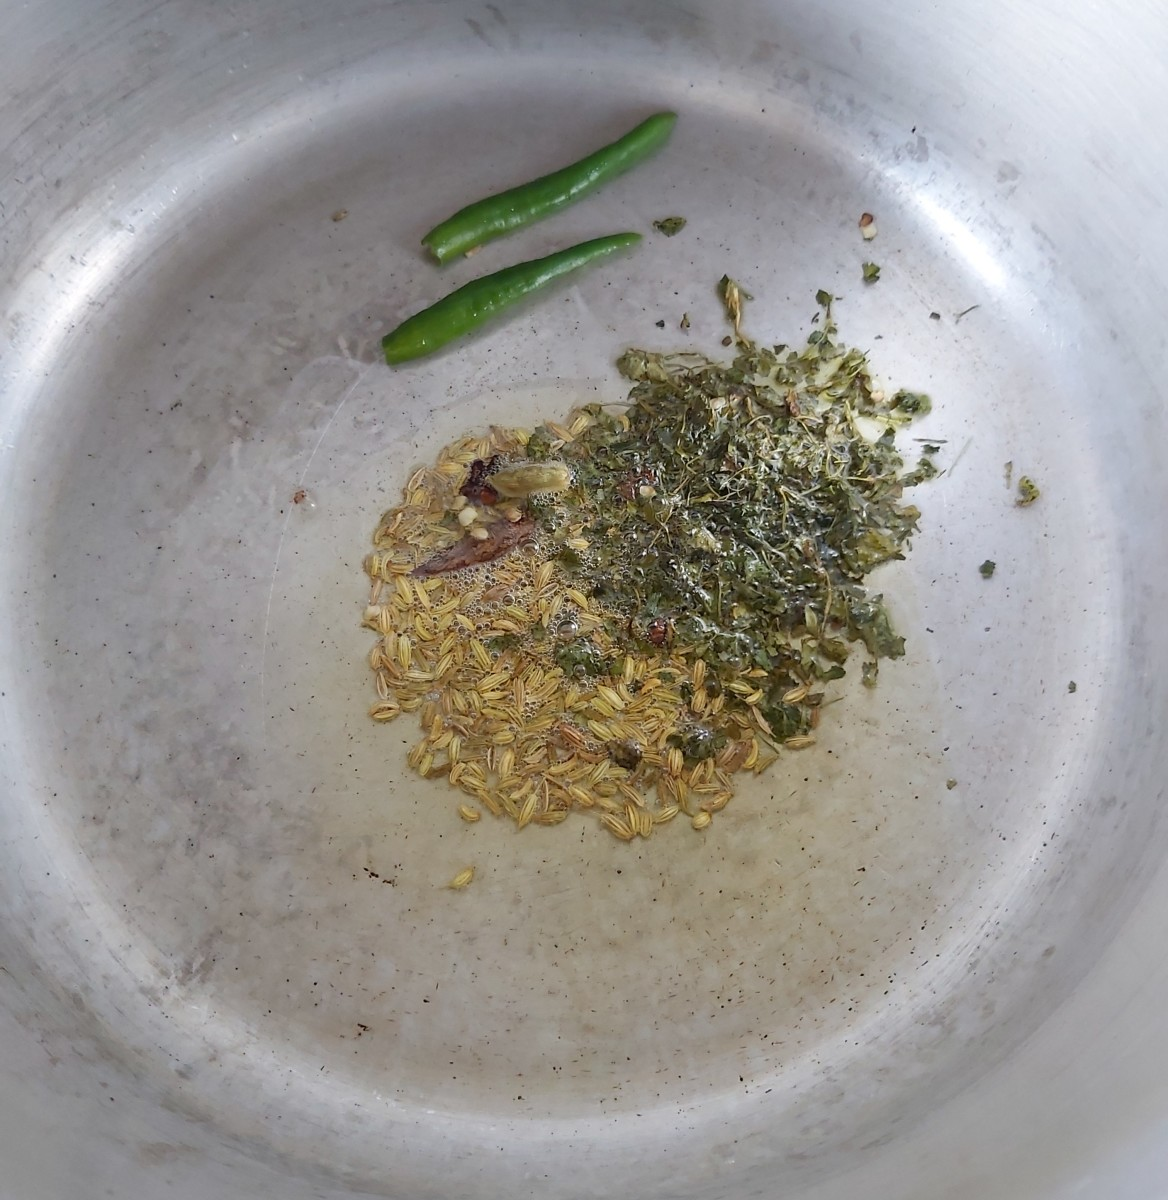 Add 1 teaspoon of fennel seeds, 1-2 teaspoons of kasuri methi or dry fenugreek leaves and 1-2 slit green chilies. Fry for a minute.